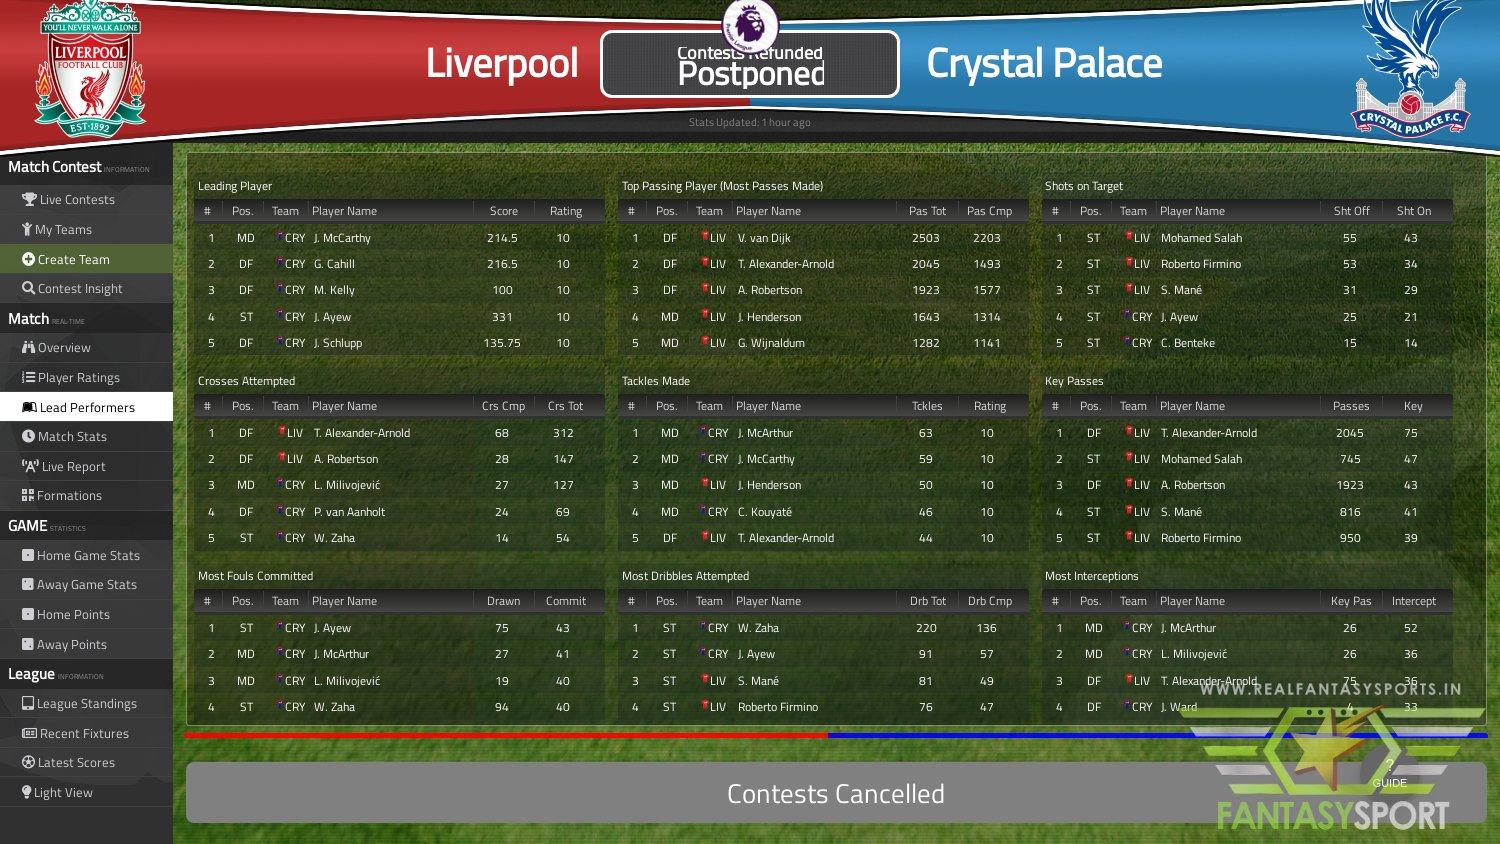 Fantasy Football Liverpool Vs Crystal Palace Saturday 21st March 2020